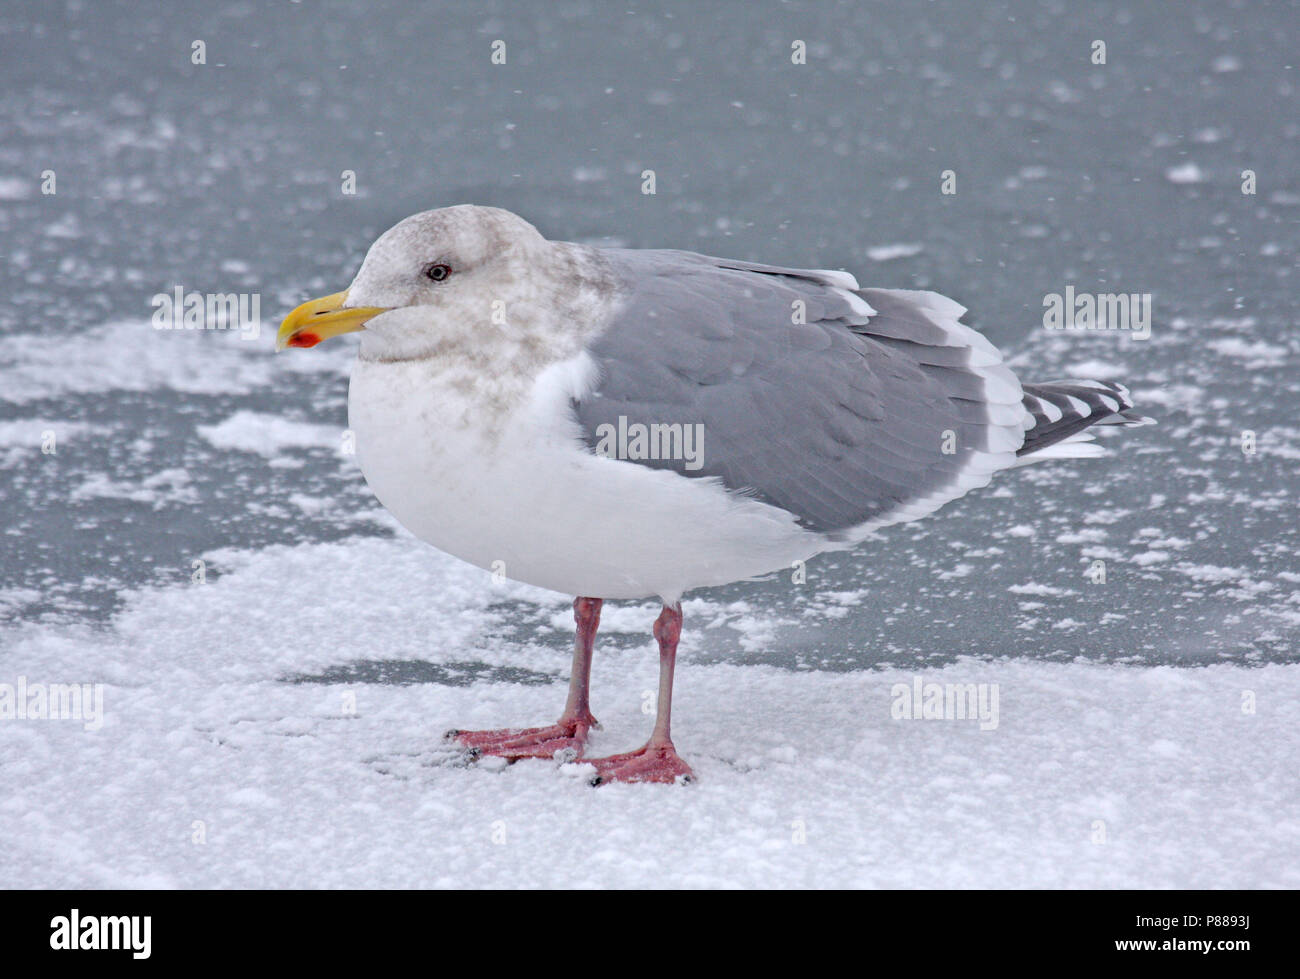 Glaucous-winged Gull (Larus glaucescens) wintering in Japan. - Stock Image